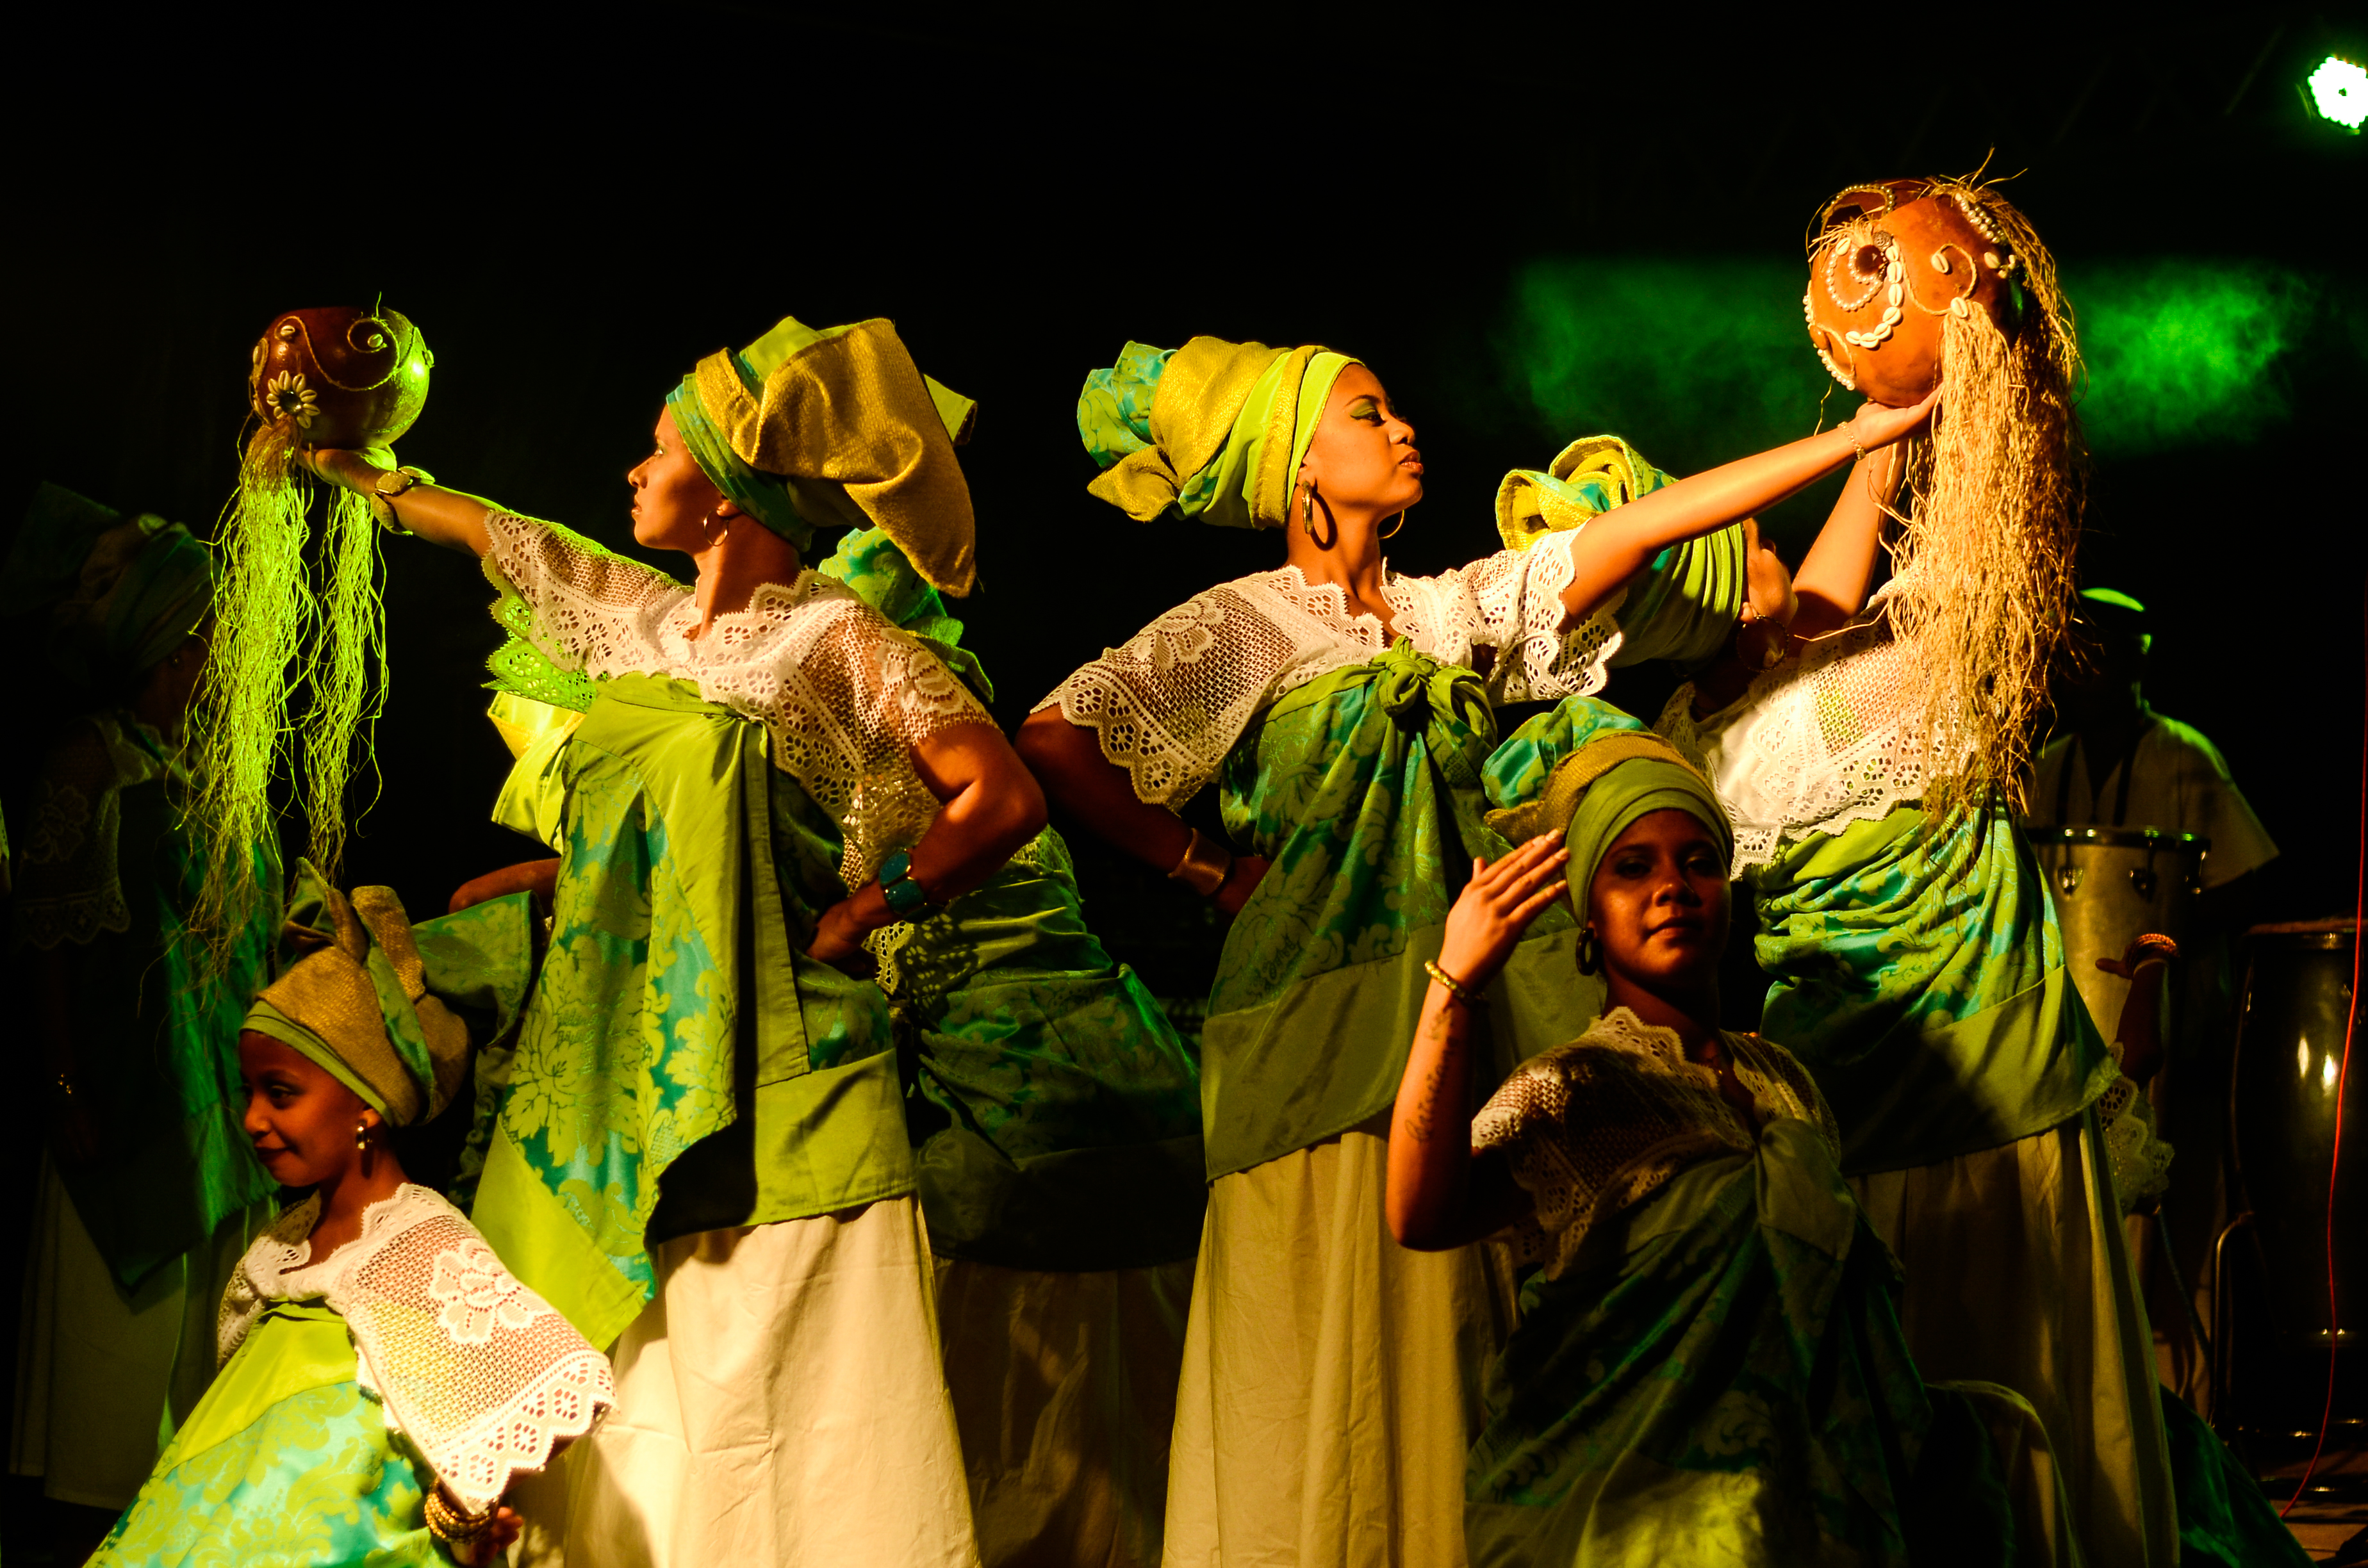 Group of Women Wearing Green-and-white Dresses